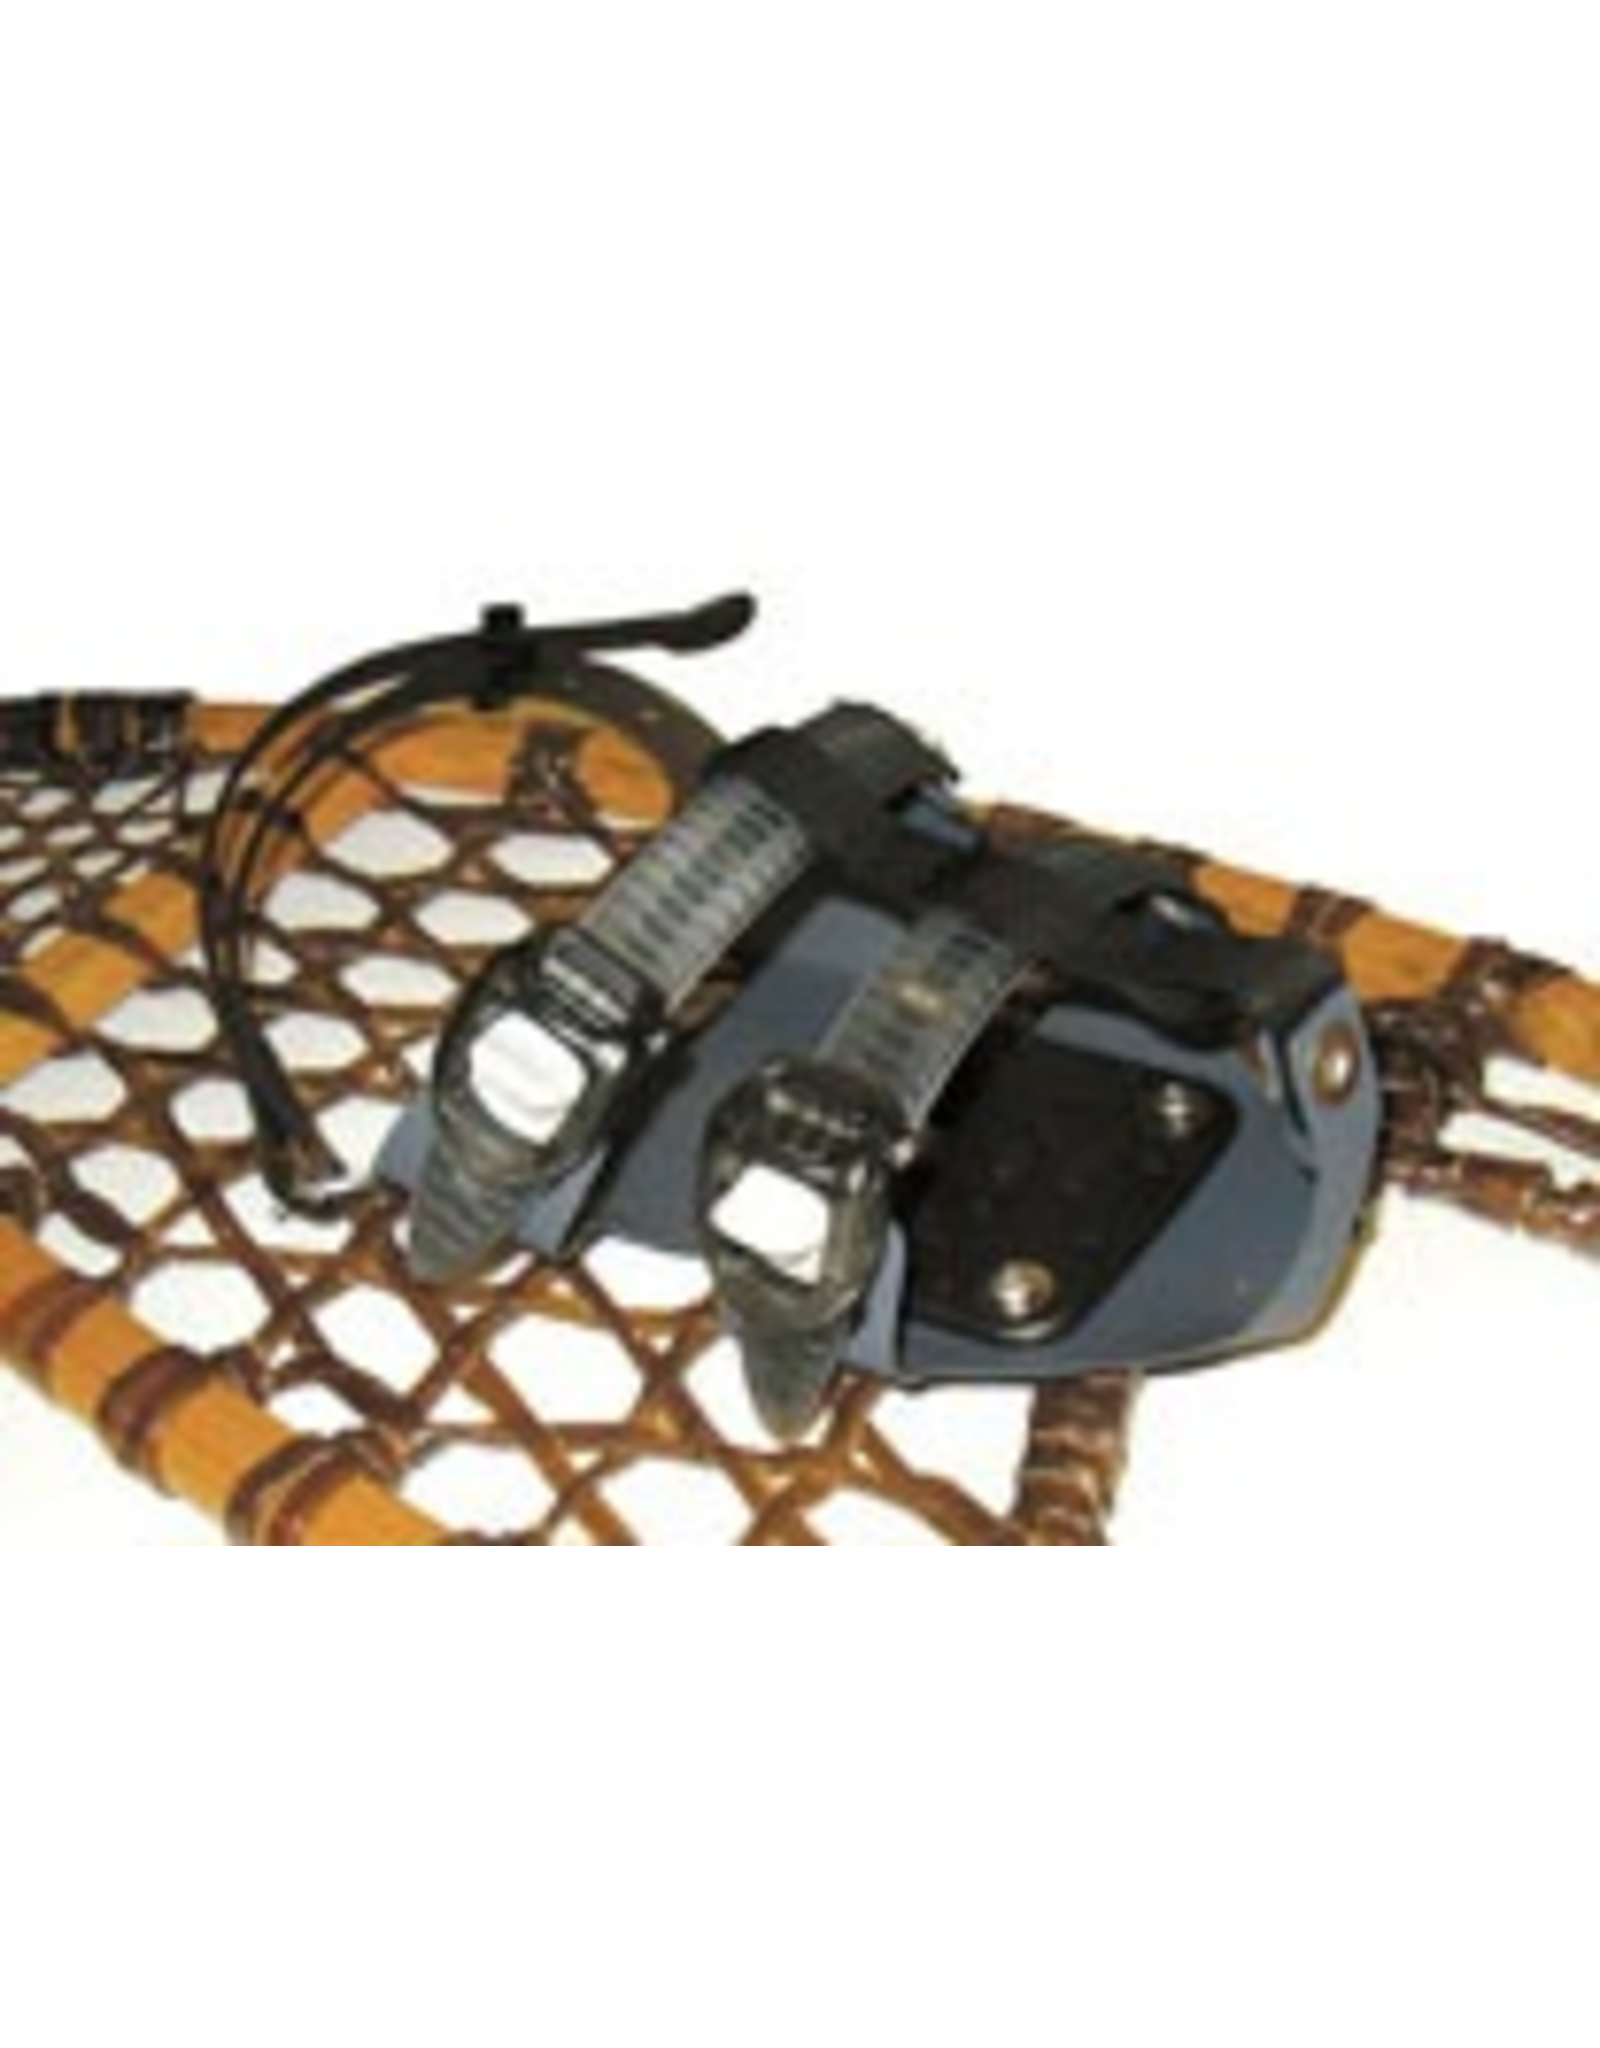 GV Snowshoes GV Snowshow Binding Olefin 2 ratchet and crampon S-M-L